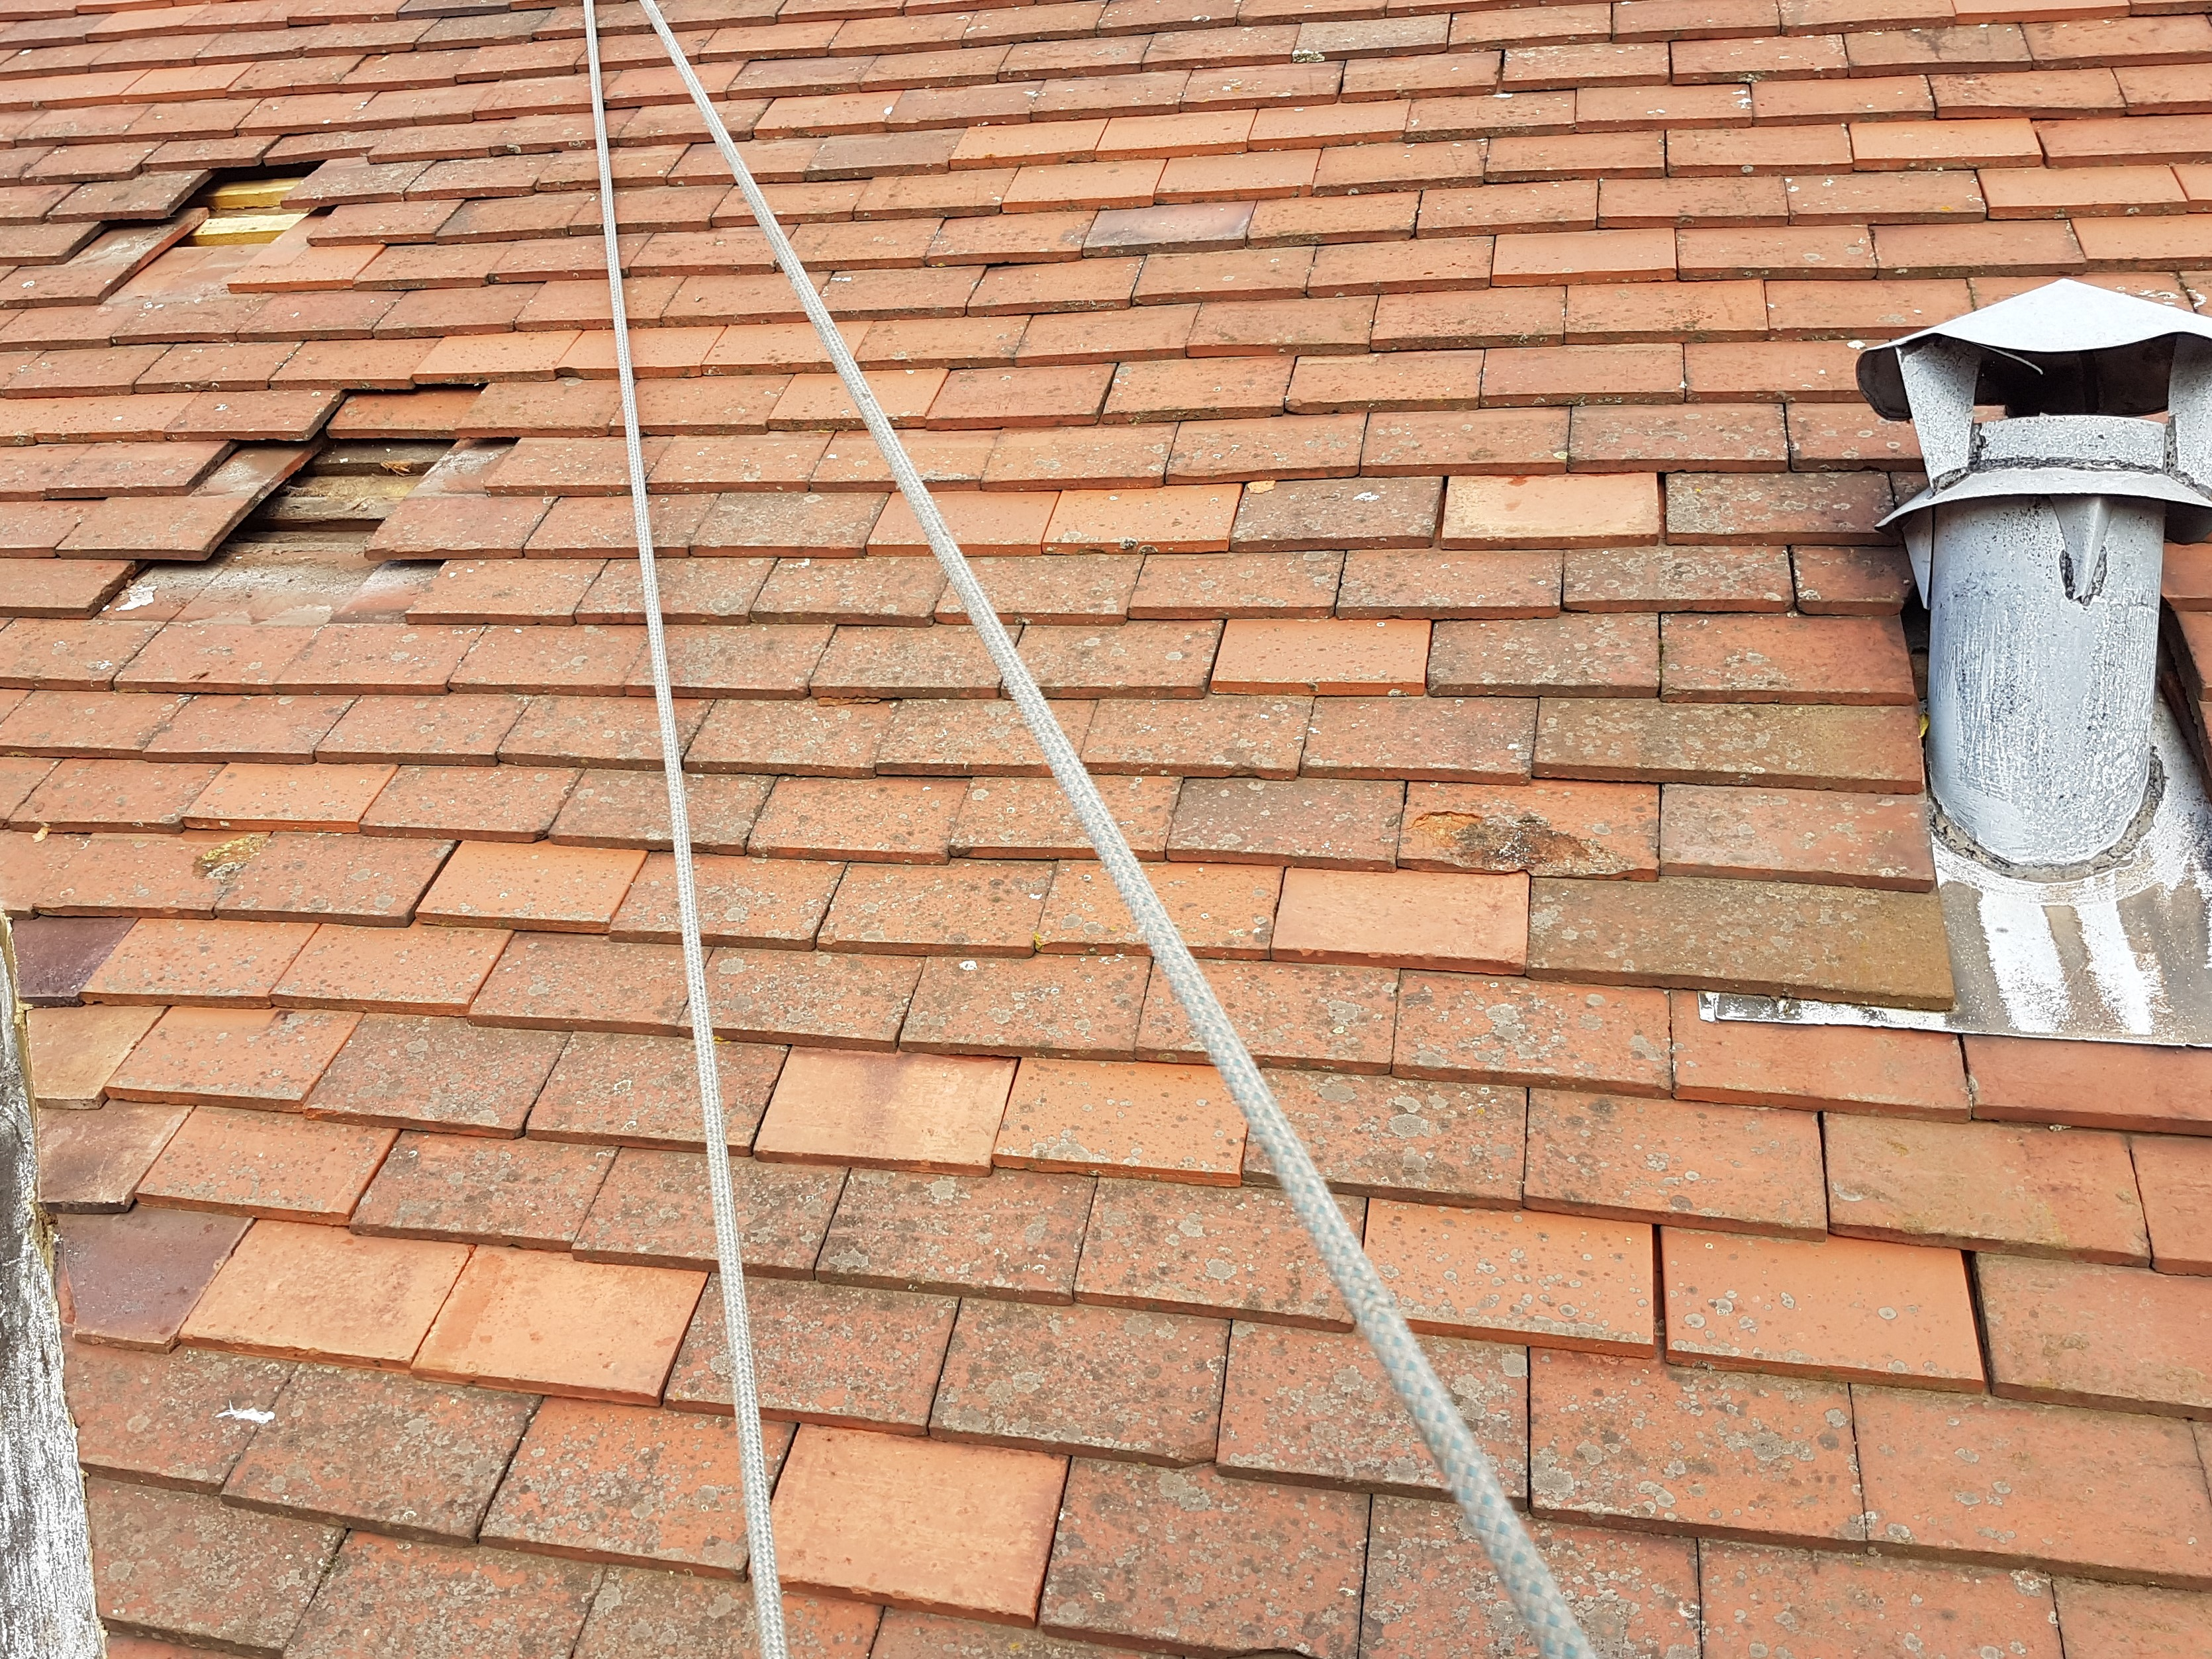 abseiling tiled roof repair